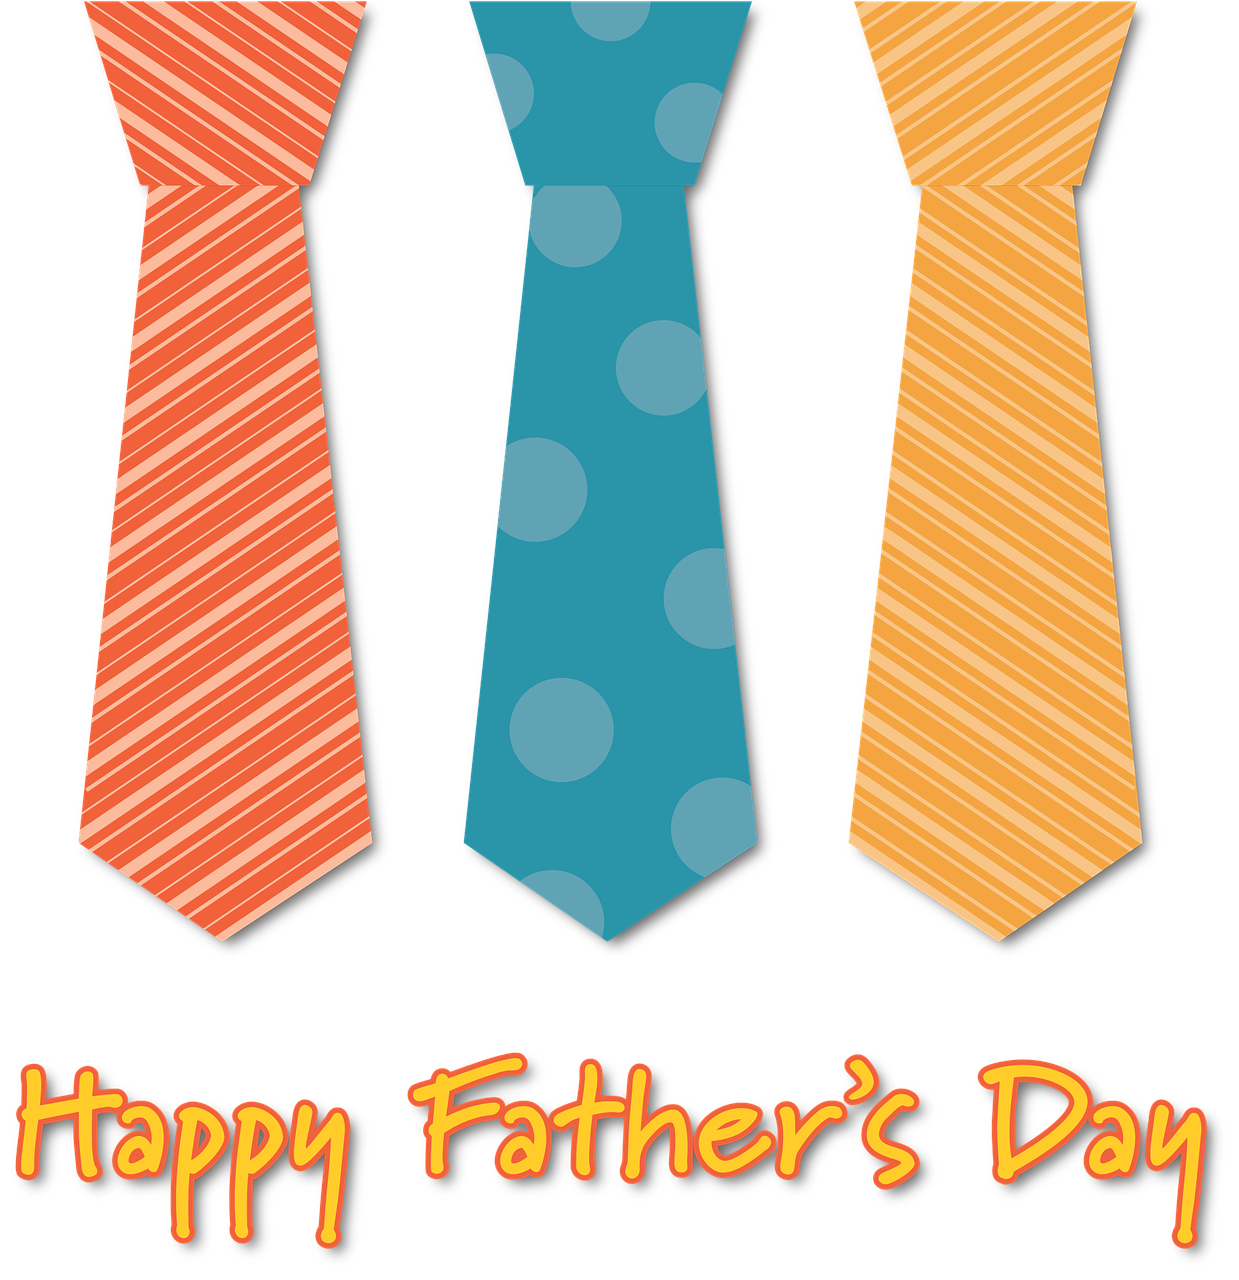 Clipart world real world. Celebrating our superhero dads